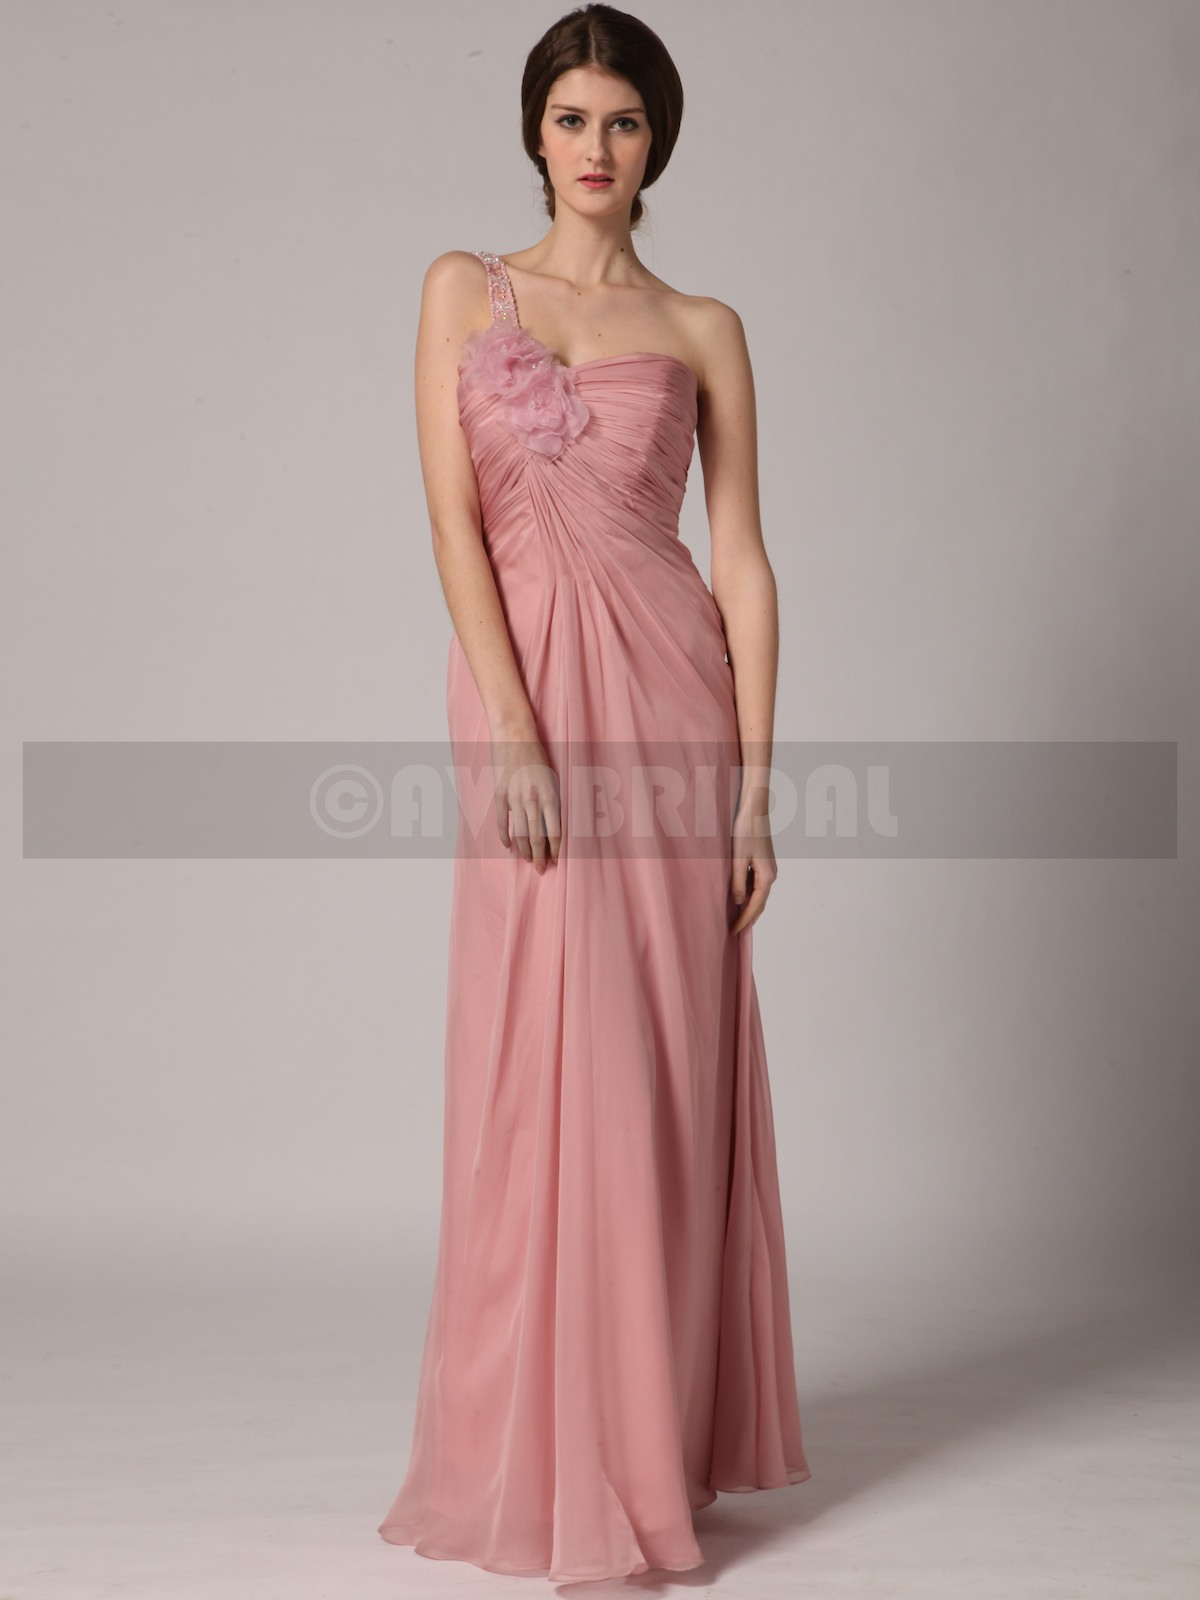 Column Asymmetric Natural Waist Satin Chiffon Bridesmaid Dress (B434)